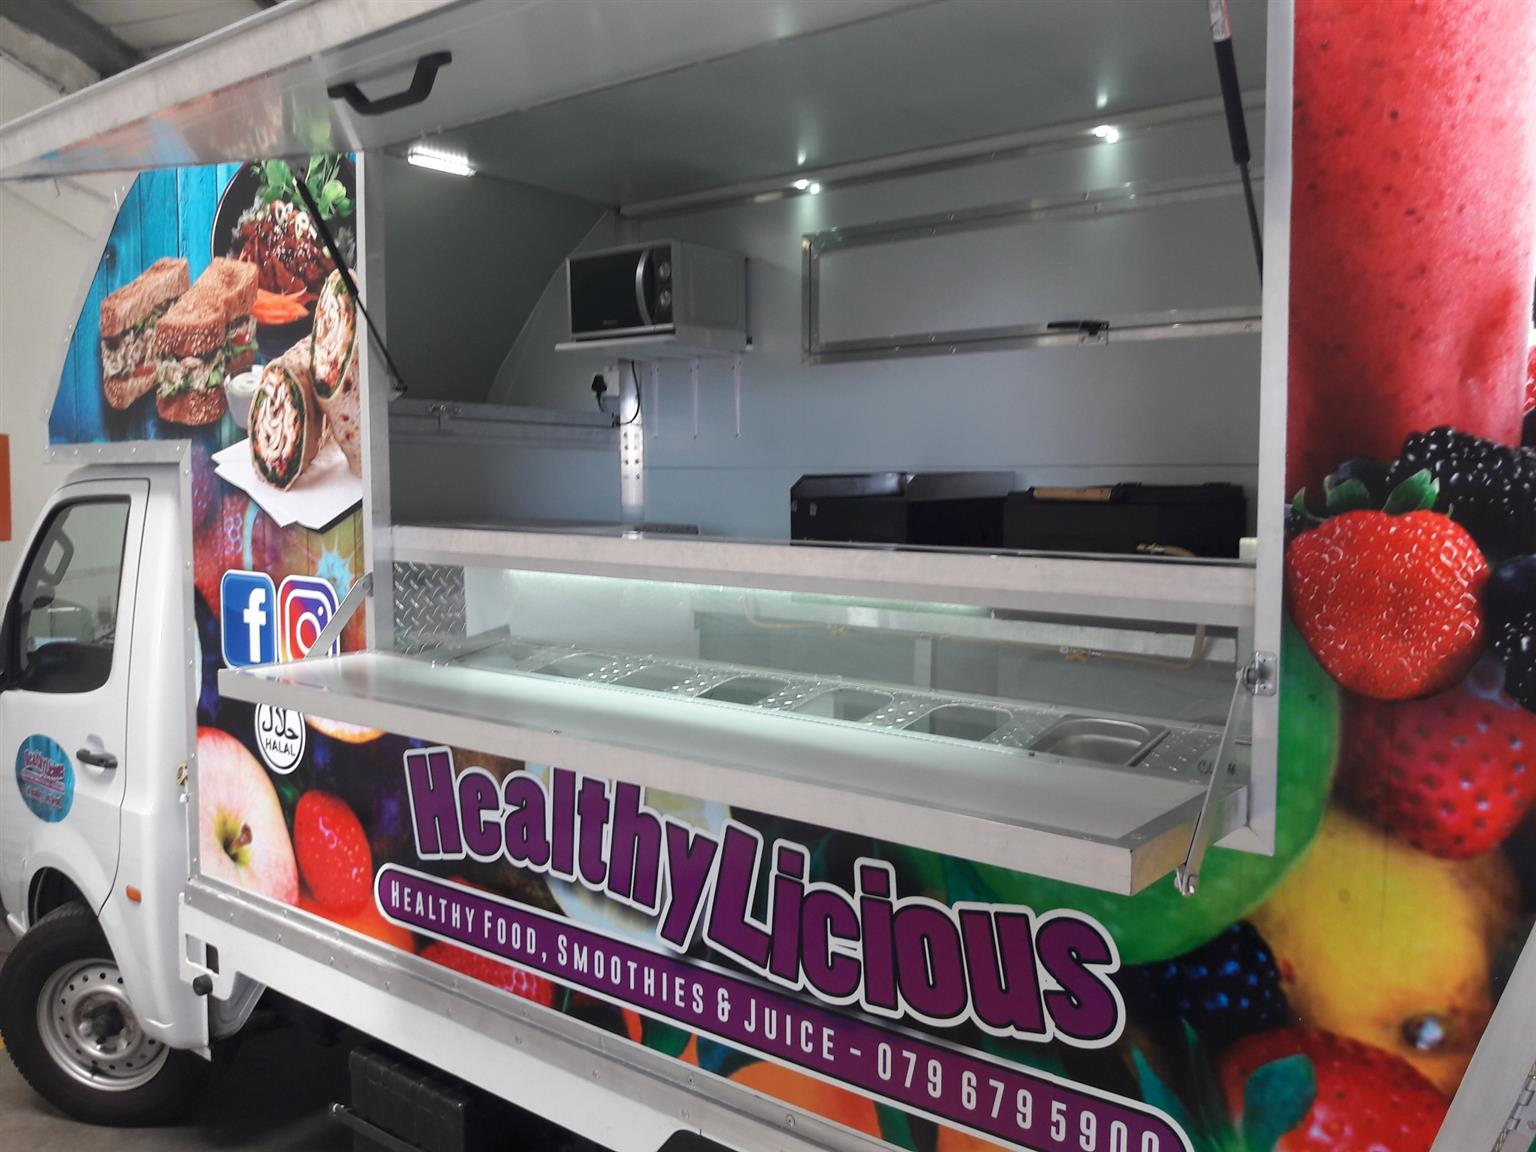 Fantastic Food Trucks Special on Now - April Easter Special - Own Business Opportunity